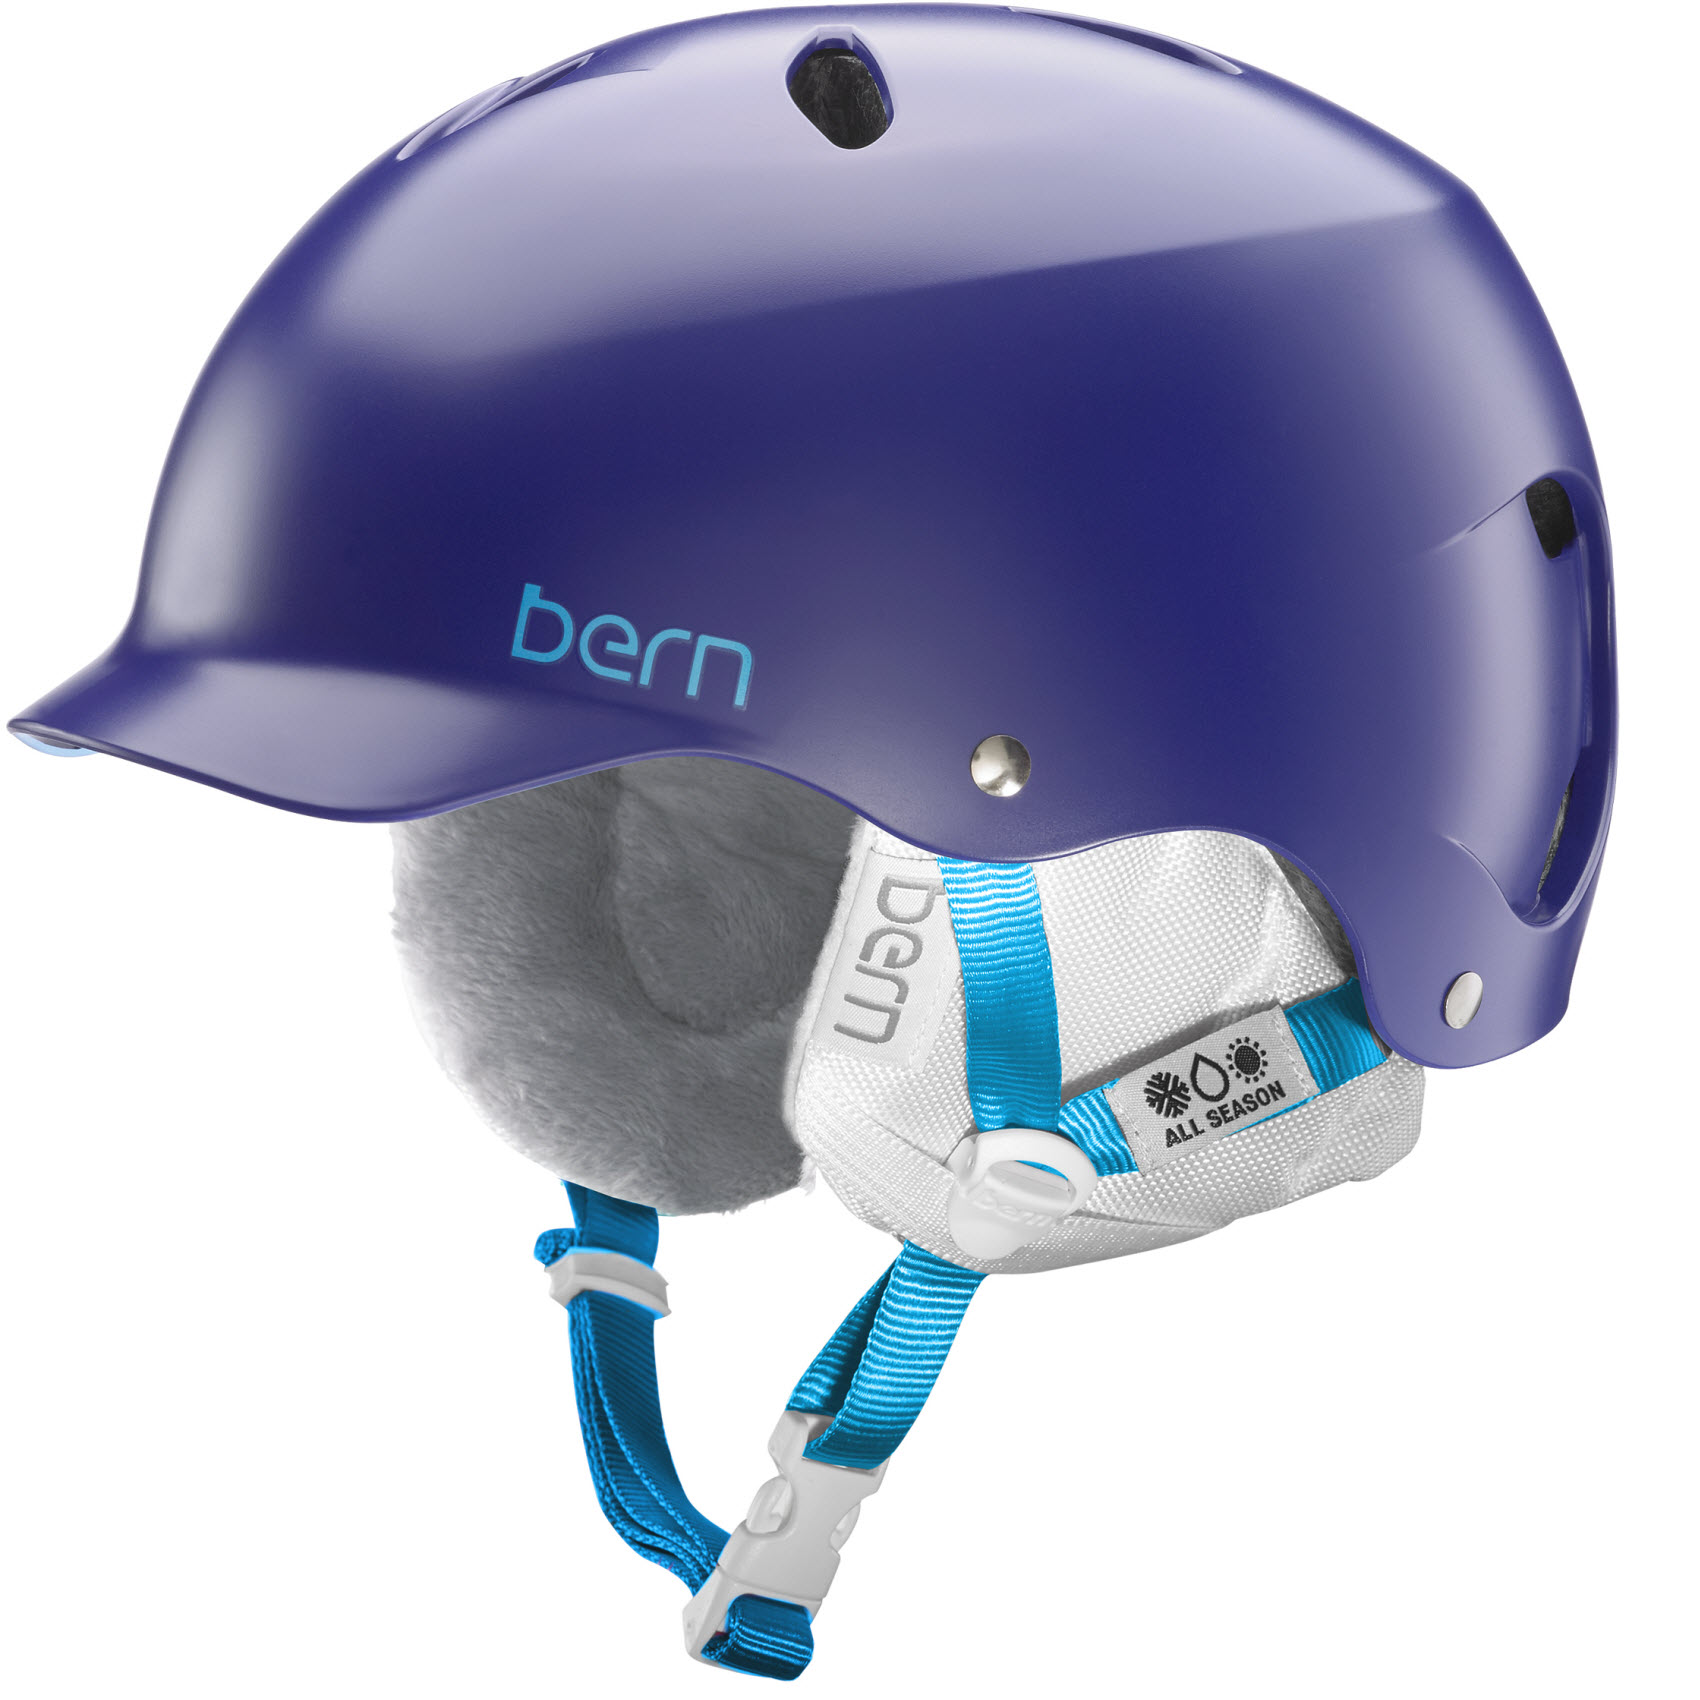 Bern Lenox EPS Womens Snowboard Ski Helmet 2015 in Satin Midnight M/L